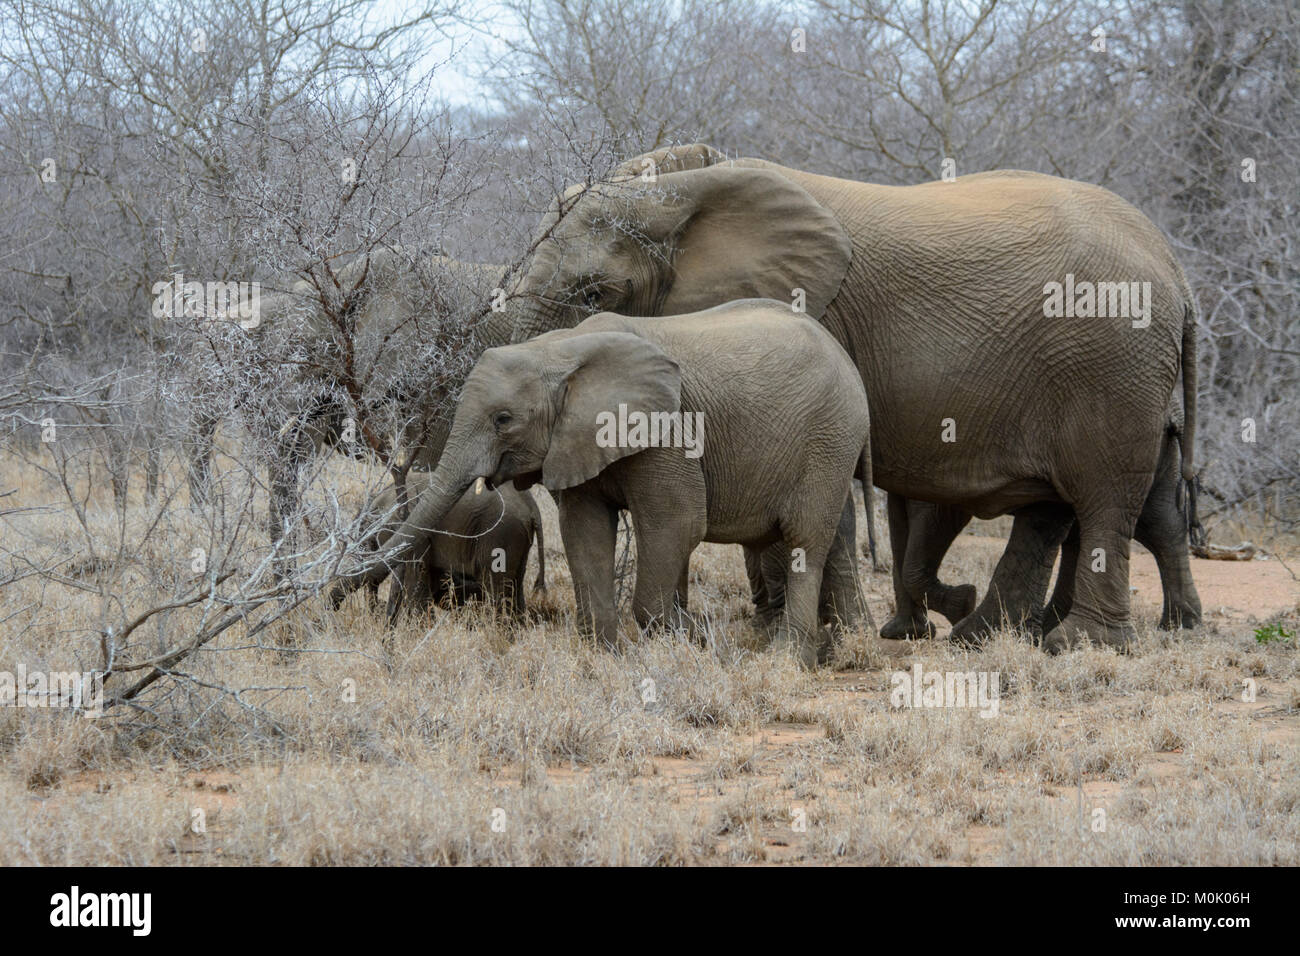 Matriarch herd of African Elephants (Loxodonta africana) in Kruger National Park, South Africa - Stock Image